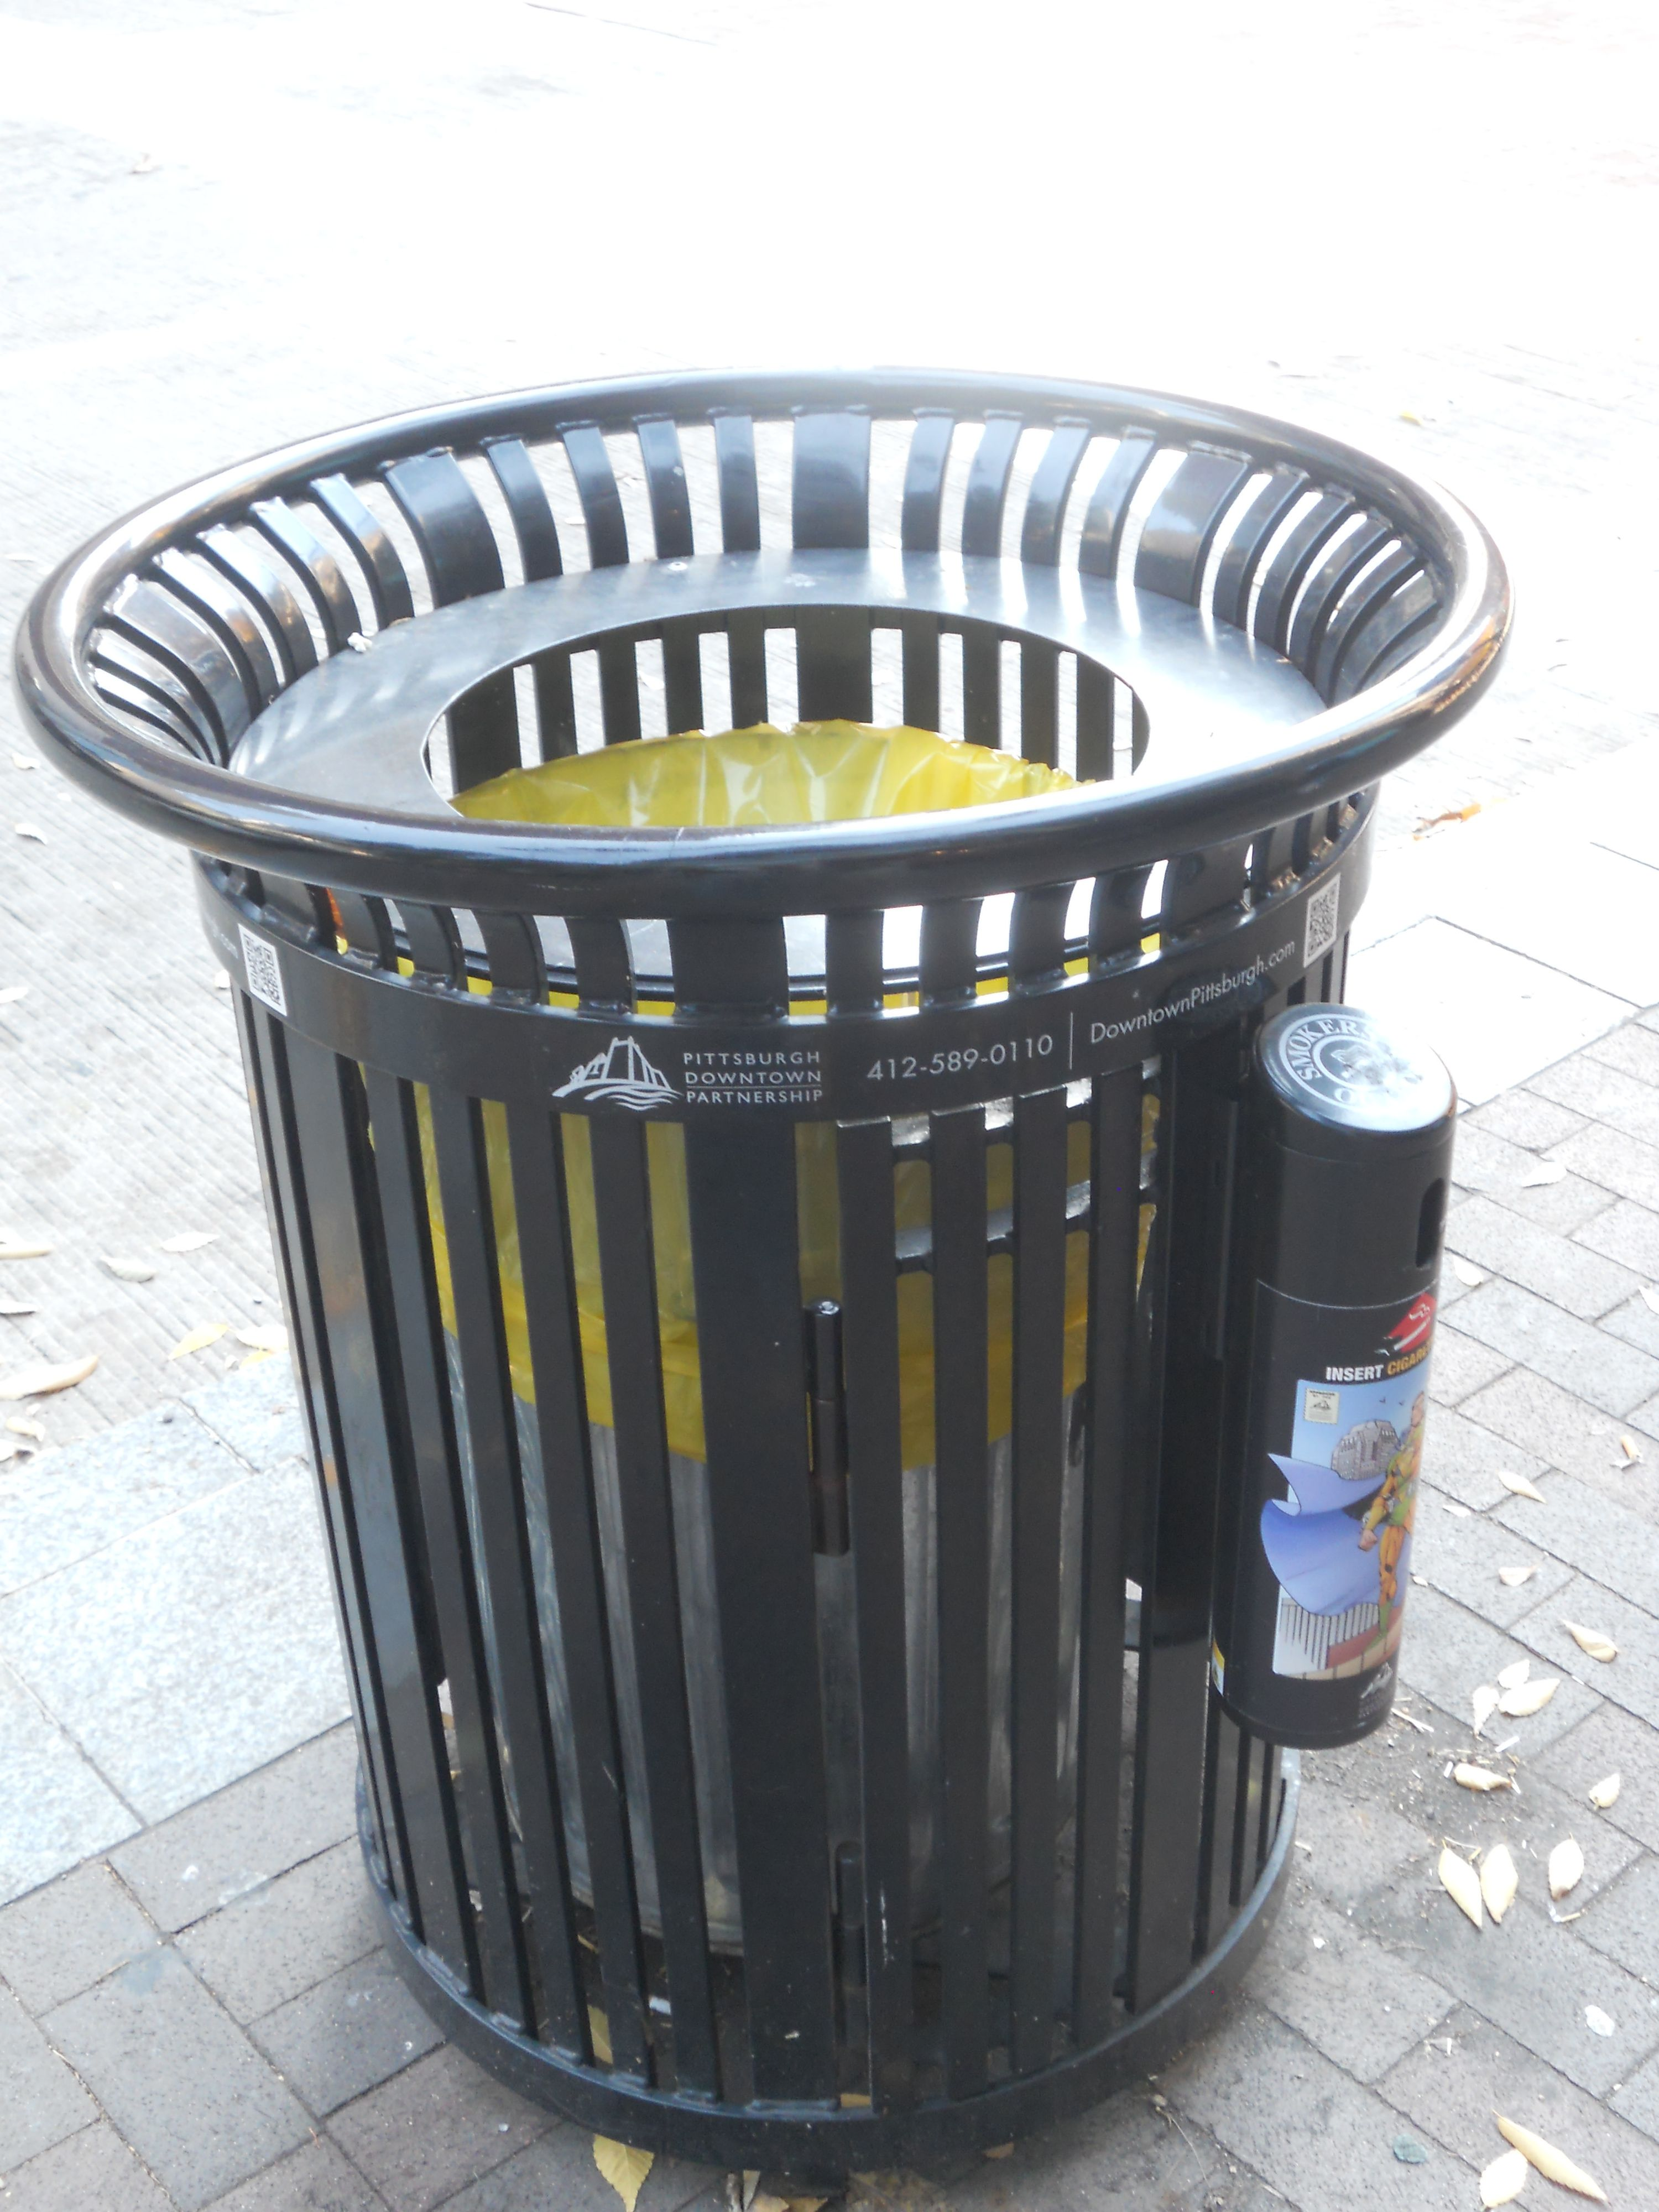 Good Public Trash Cans In Pittsburgh City Planning Stuff